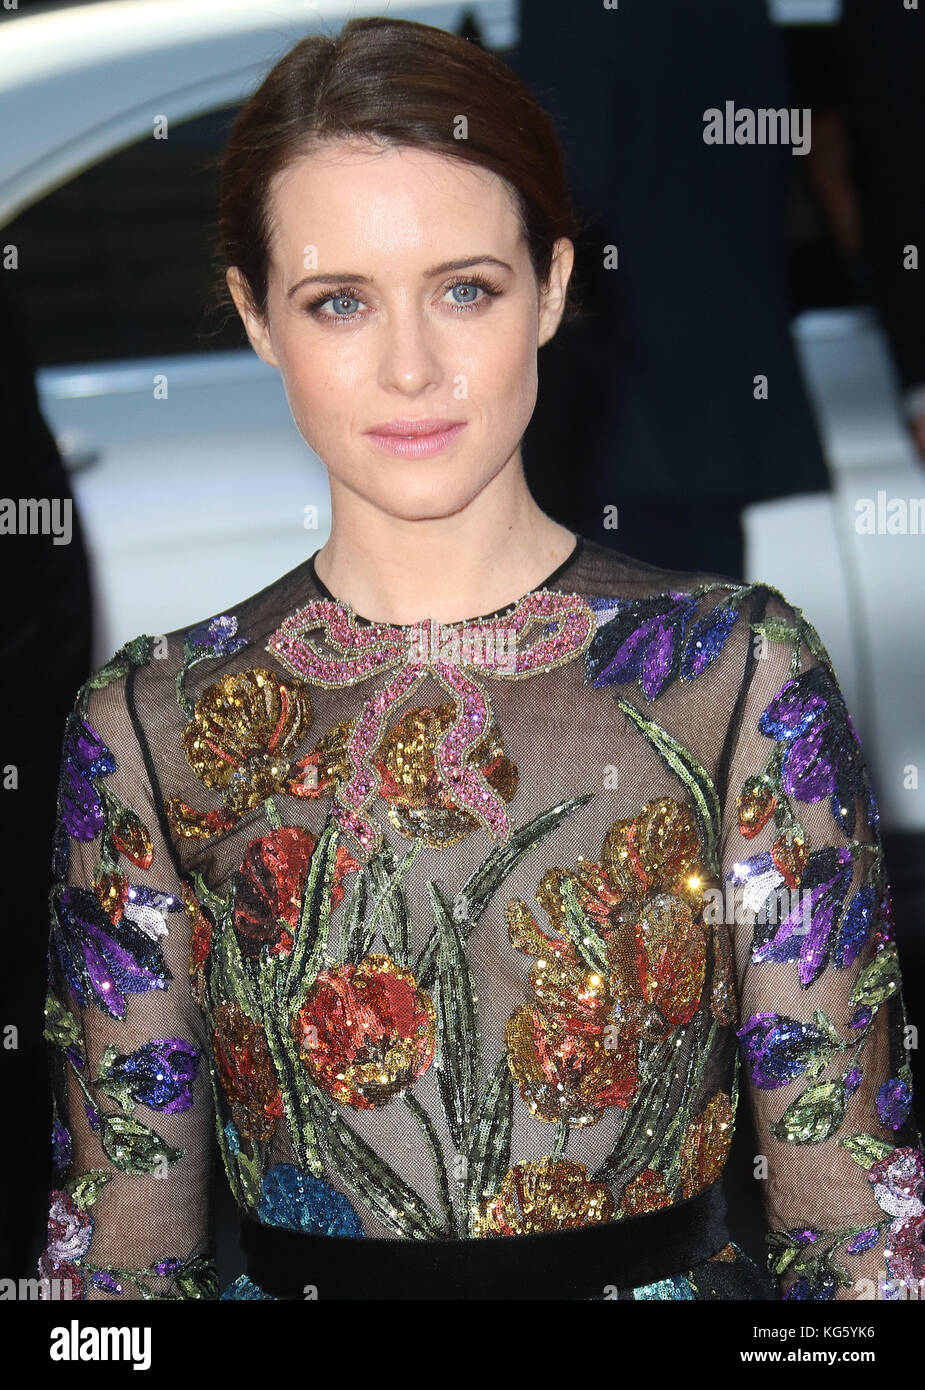 Oct 04, 2017 - Claire Foy attending 'Breathe' European Premiere, Odeon Leicester Square in London, England, - Stock Image